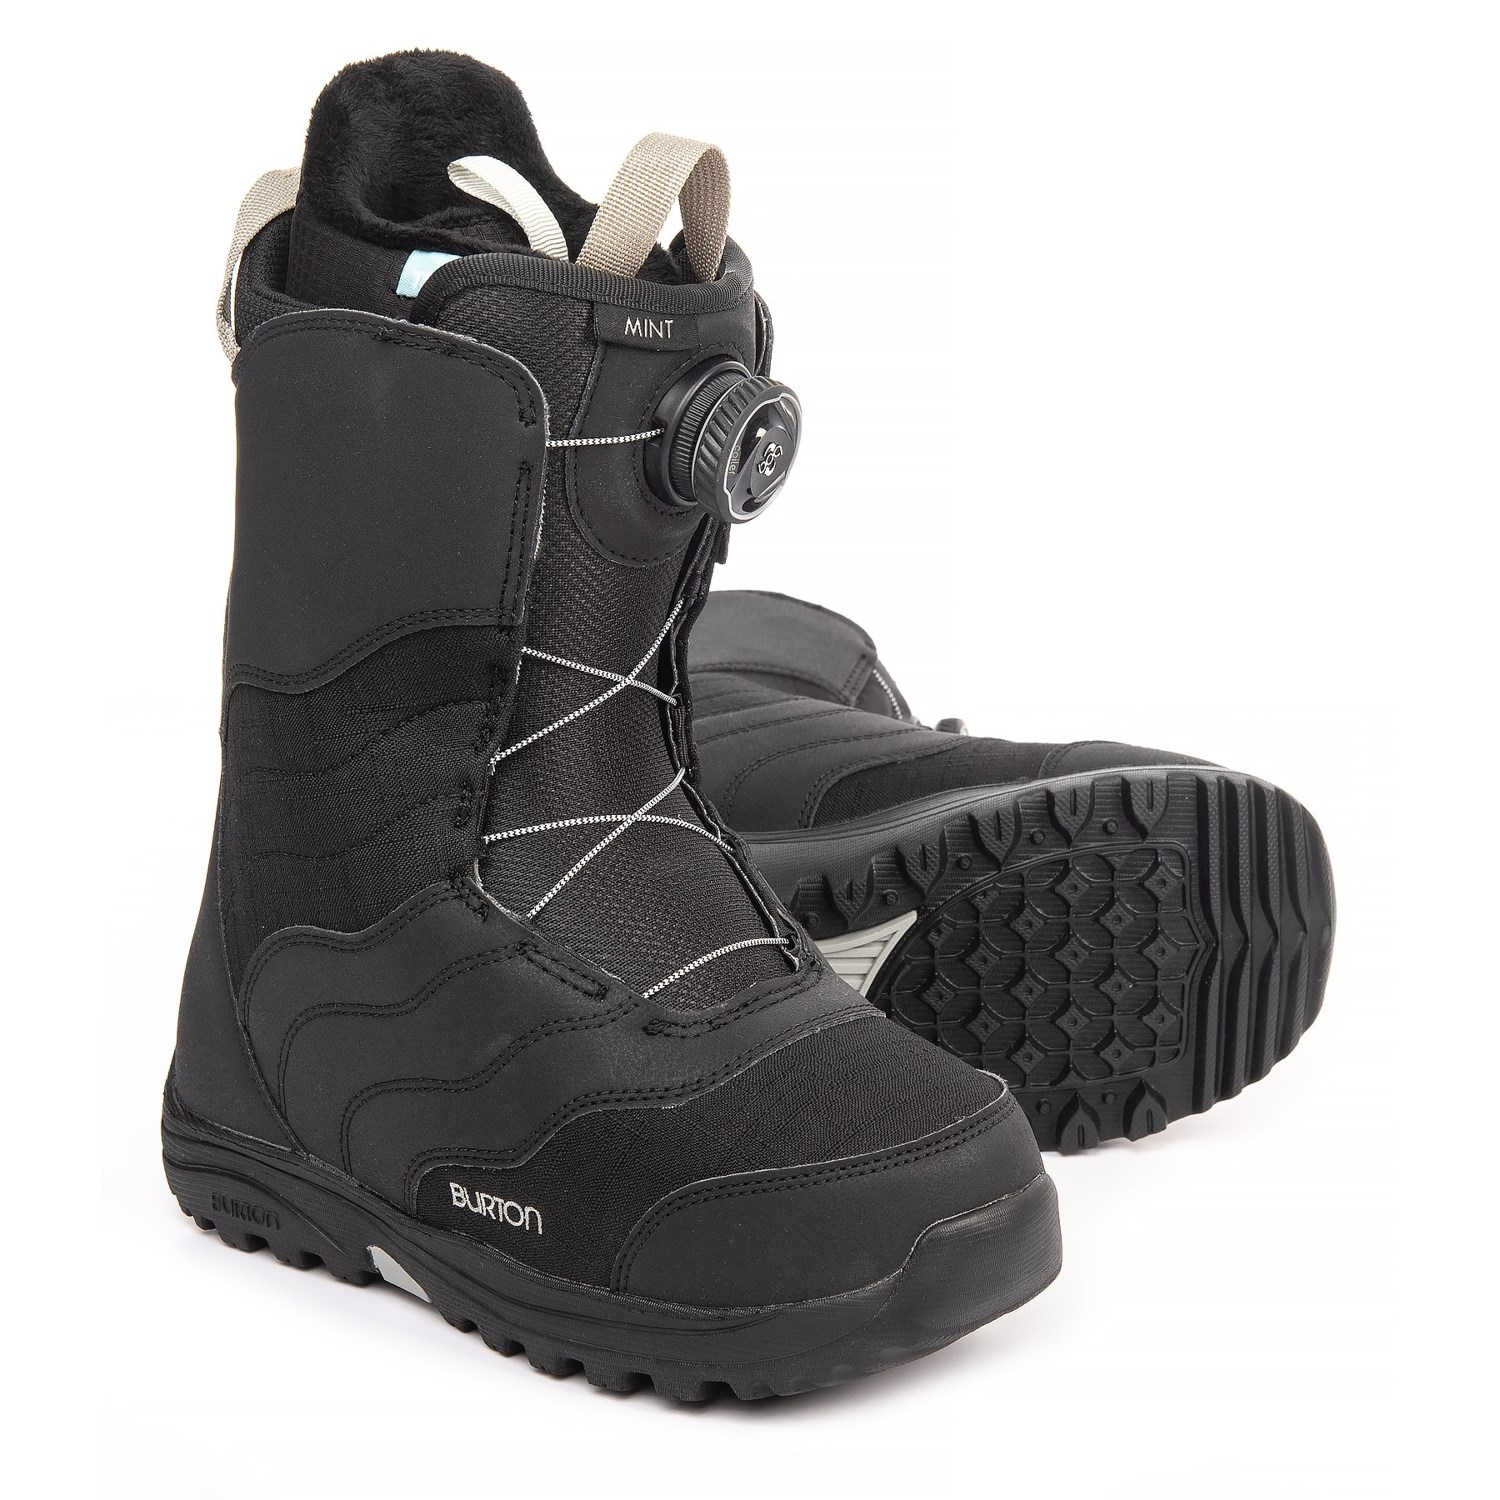 325750d2c5 Burton Mint BOA® Snowboard Boots (For Women) in Black. Tap to expand